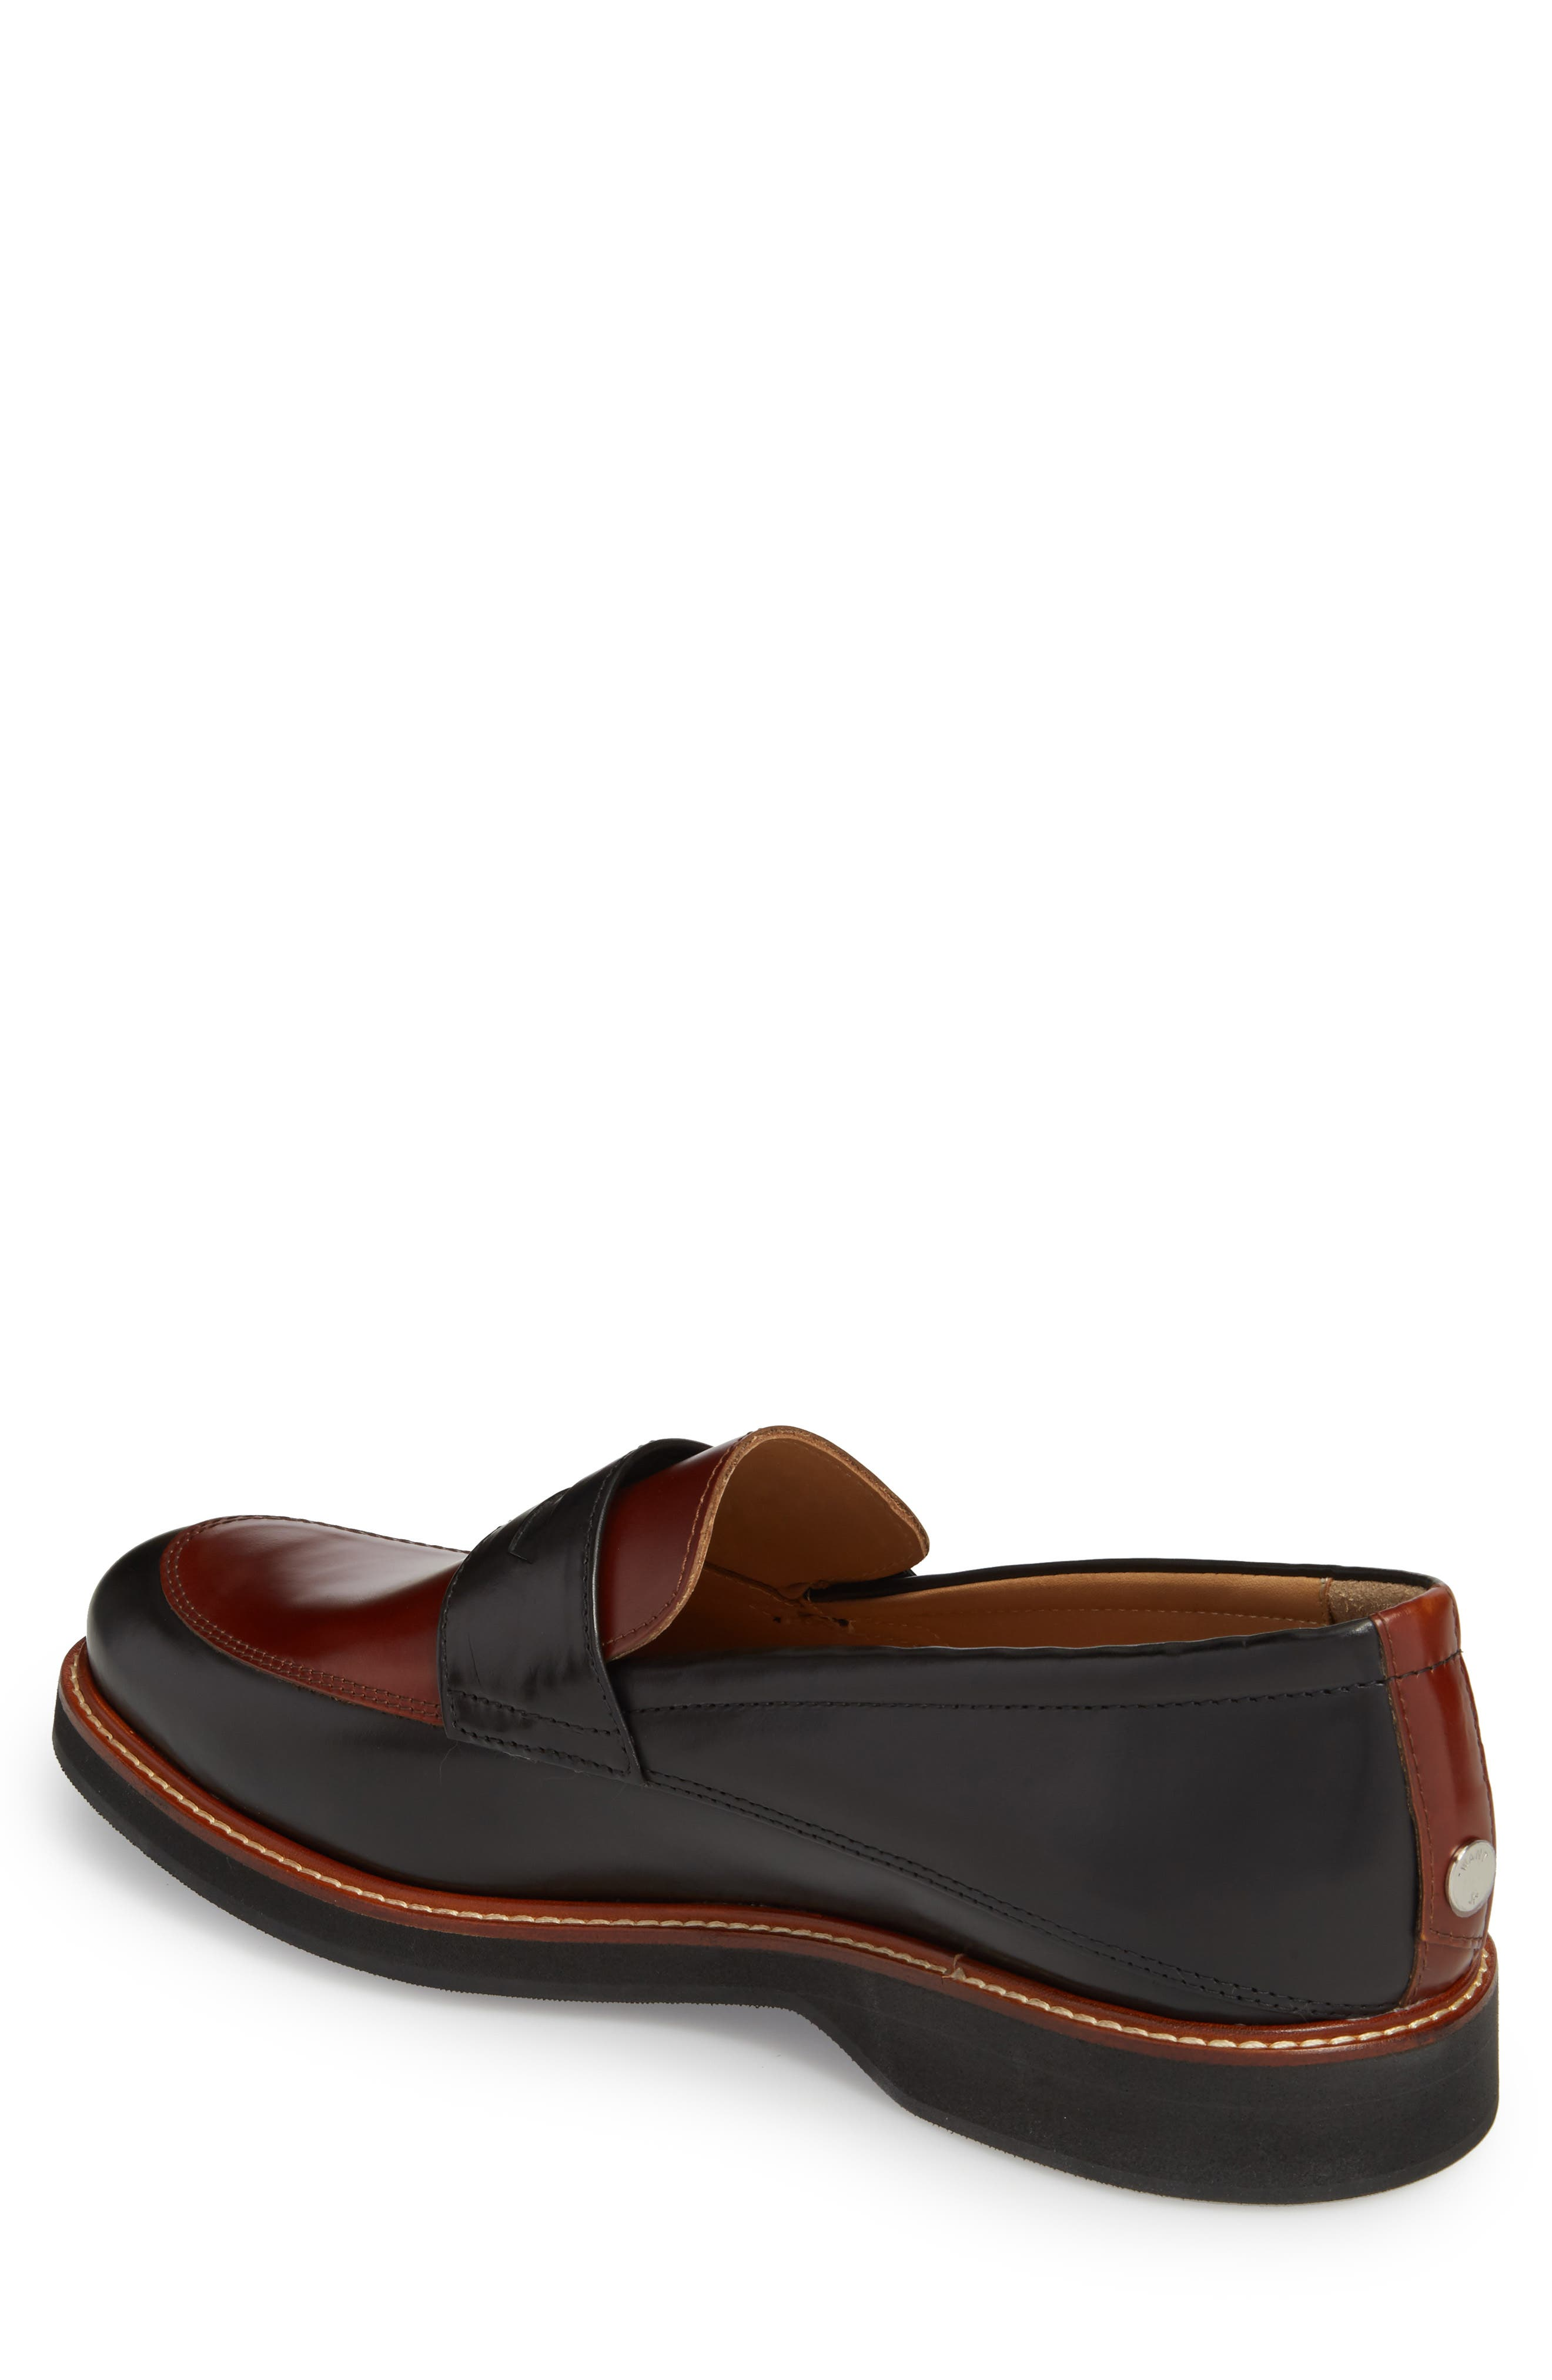 Marcus Penny Loafer,                             Alternate thumbnail 2, color,                             010